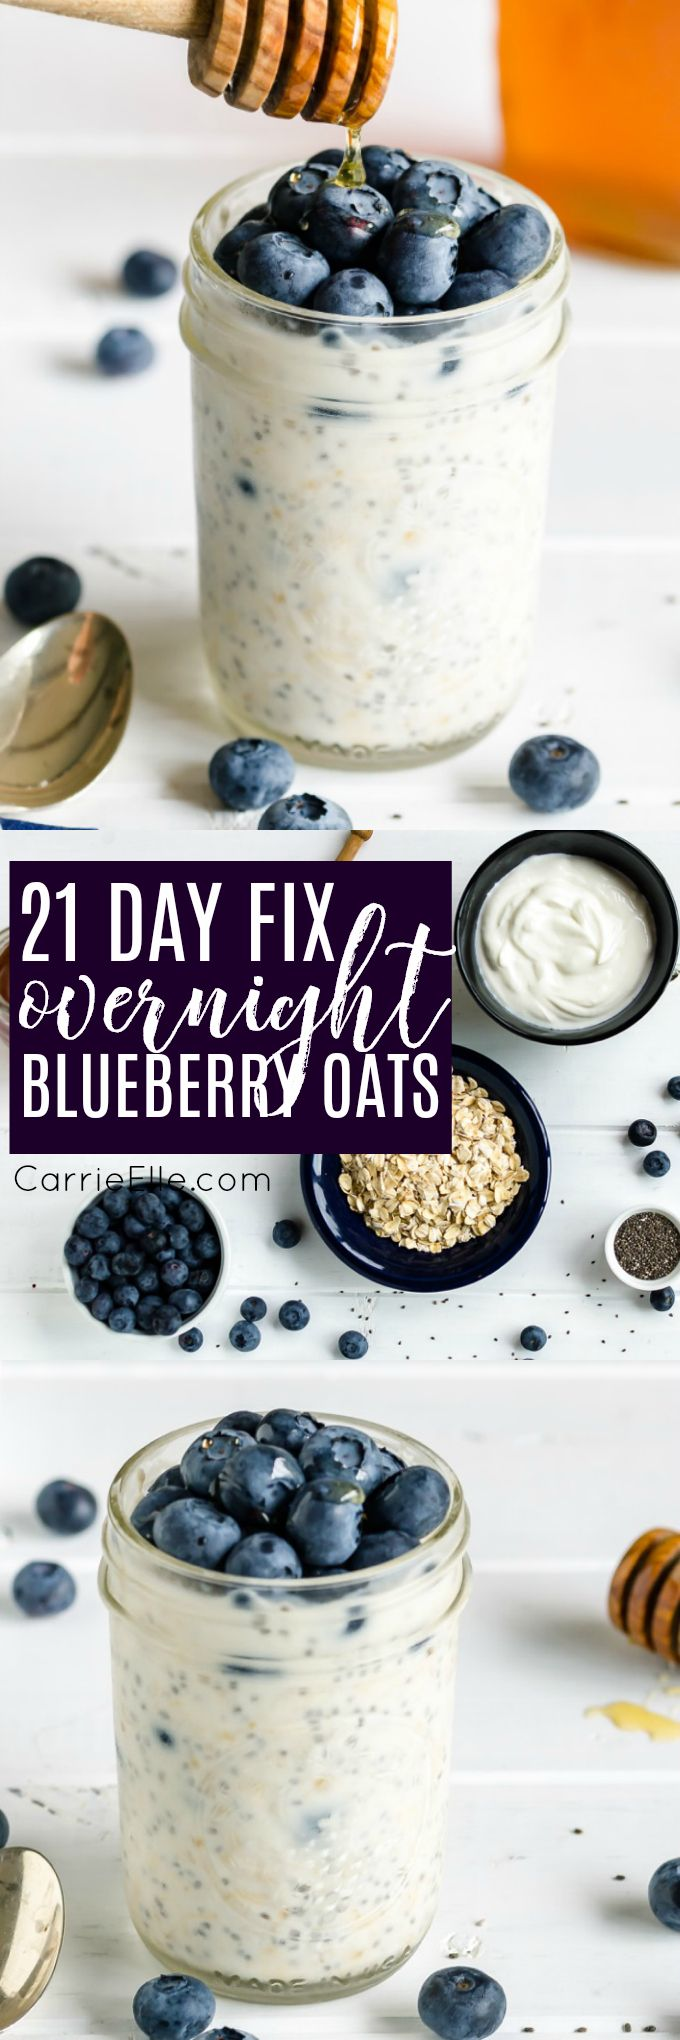 21 Day Fix Blueberry Overnight Oats via @carrieelleblog